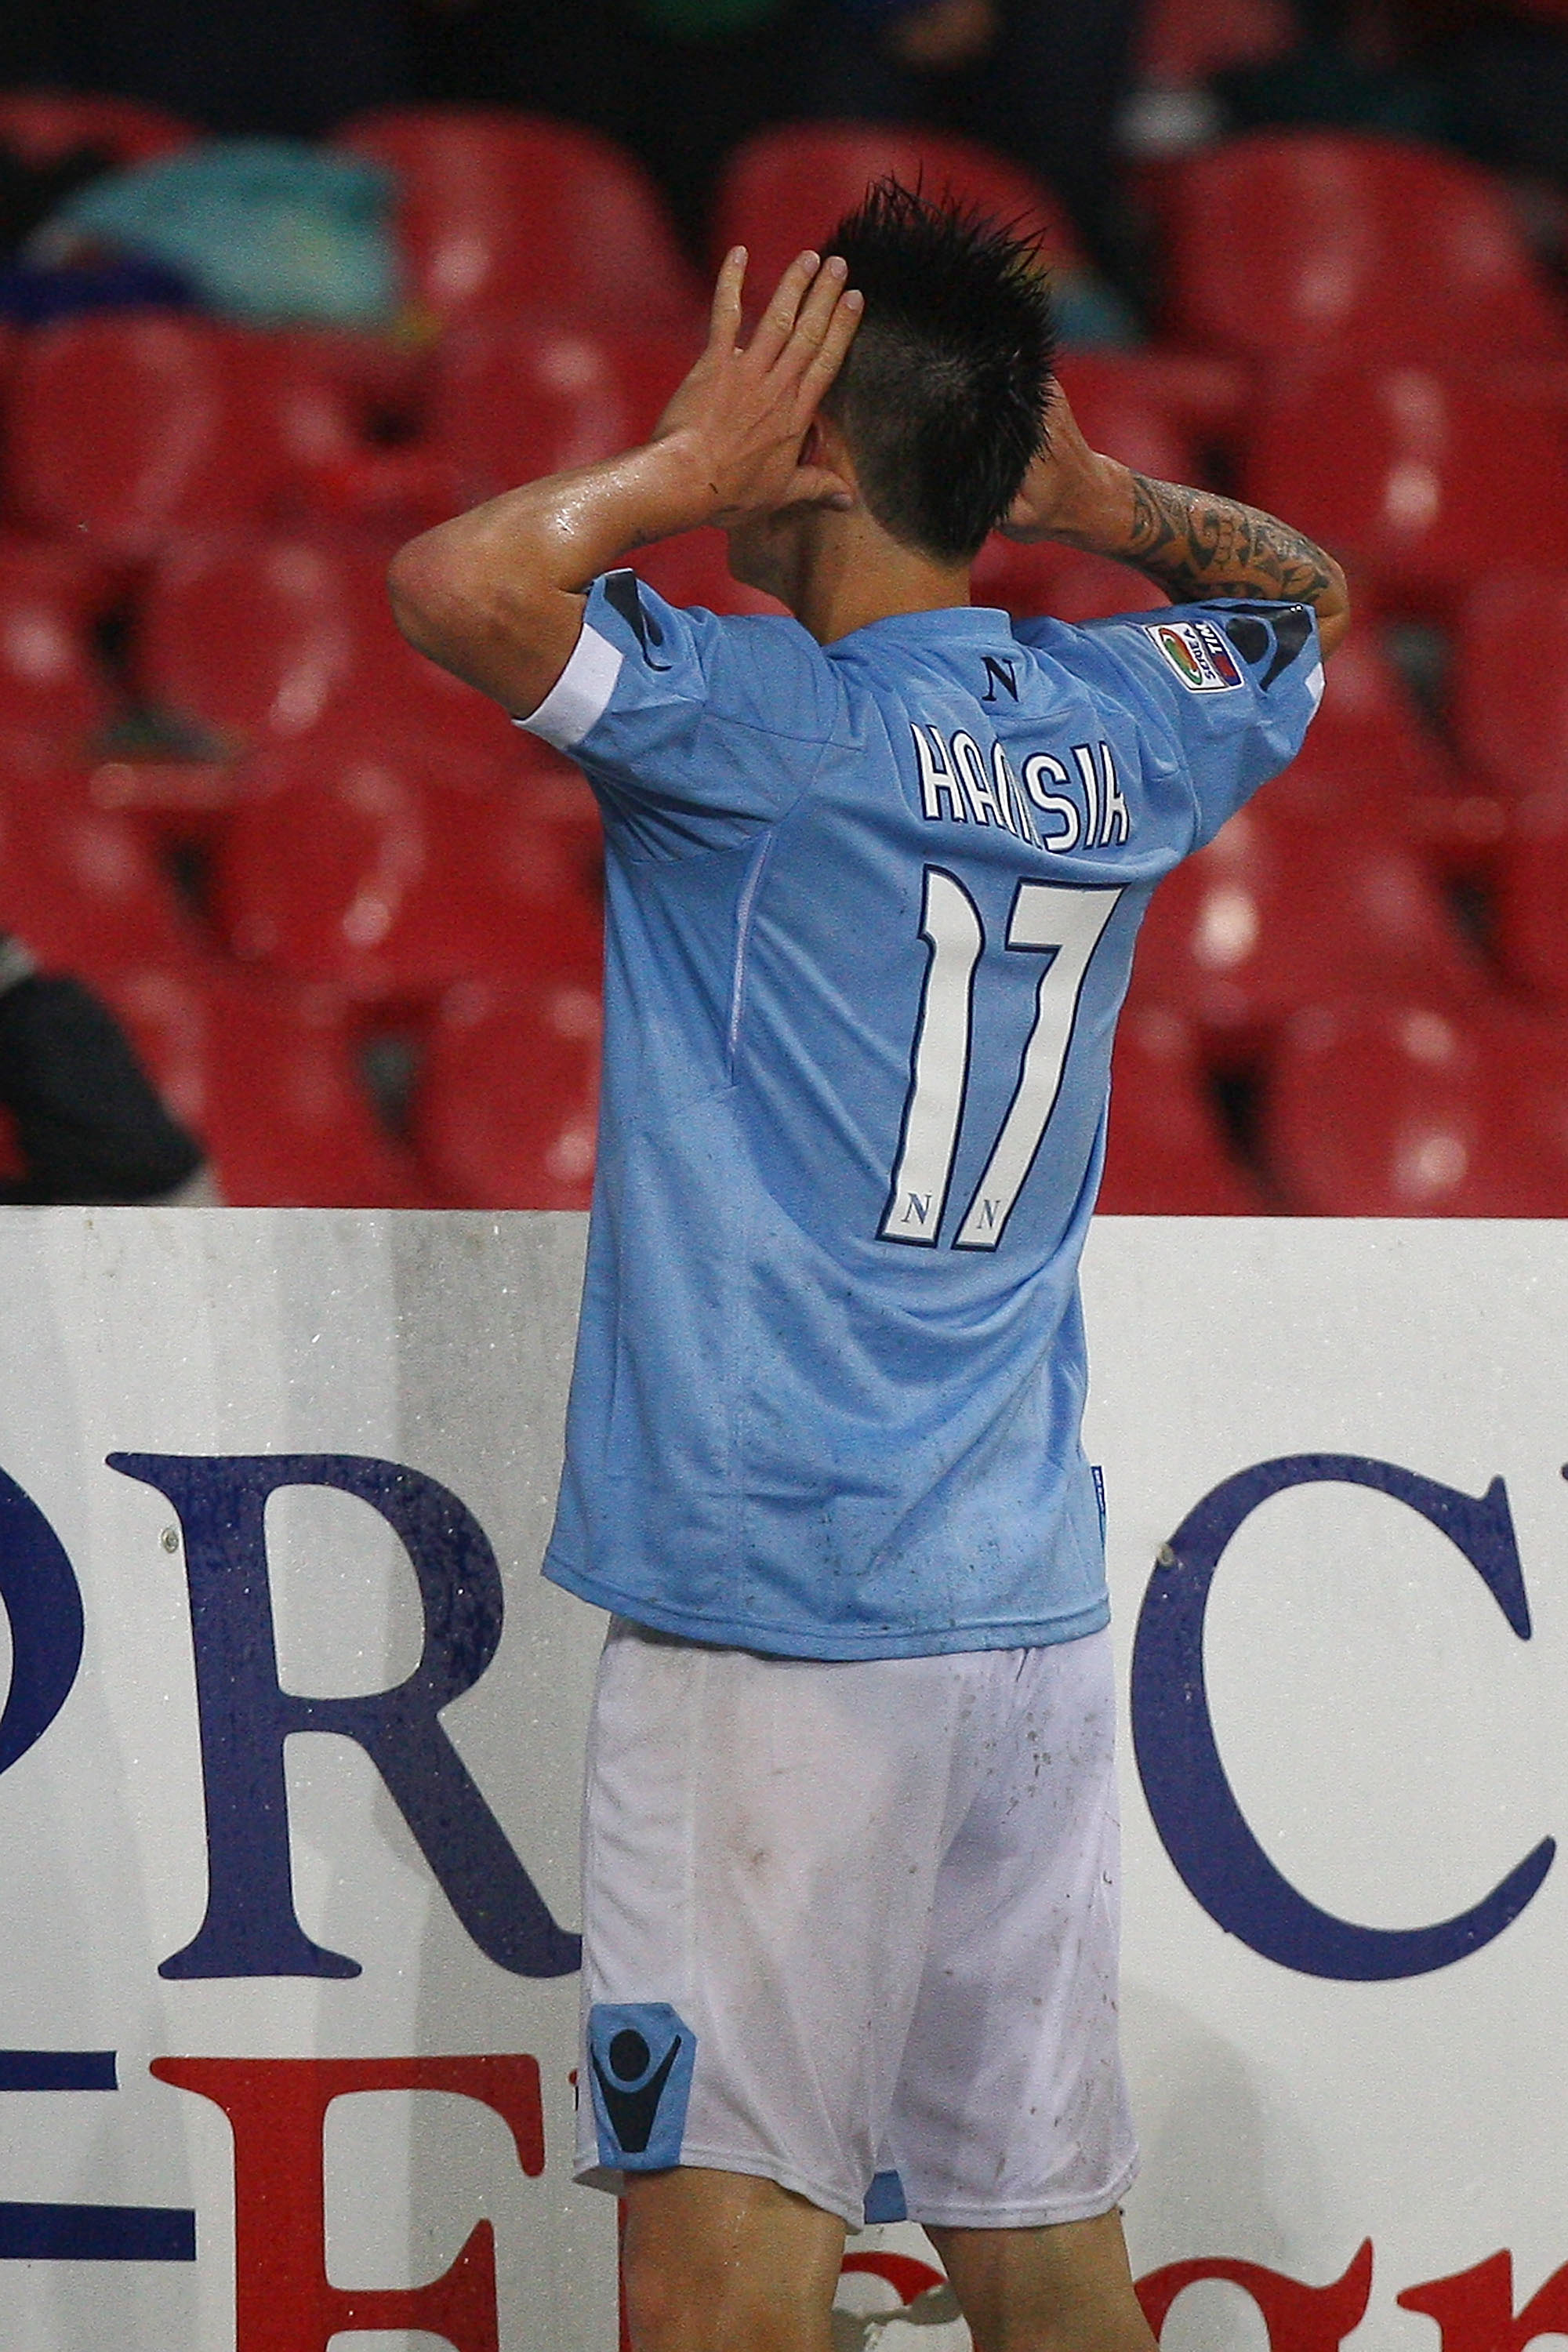 NAPLES, ITALY - APRIL 30:  Marek Hamsik of SSC Napoli celebrates after scoring the opening goal during the Serie A match between SSC Napoli and Genoa CFC at Stadio San Paolo on April 30, 2011 in Naples, Italy.  (Photo by Paolo Bruno/Getty Images)